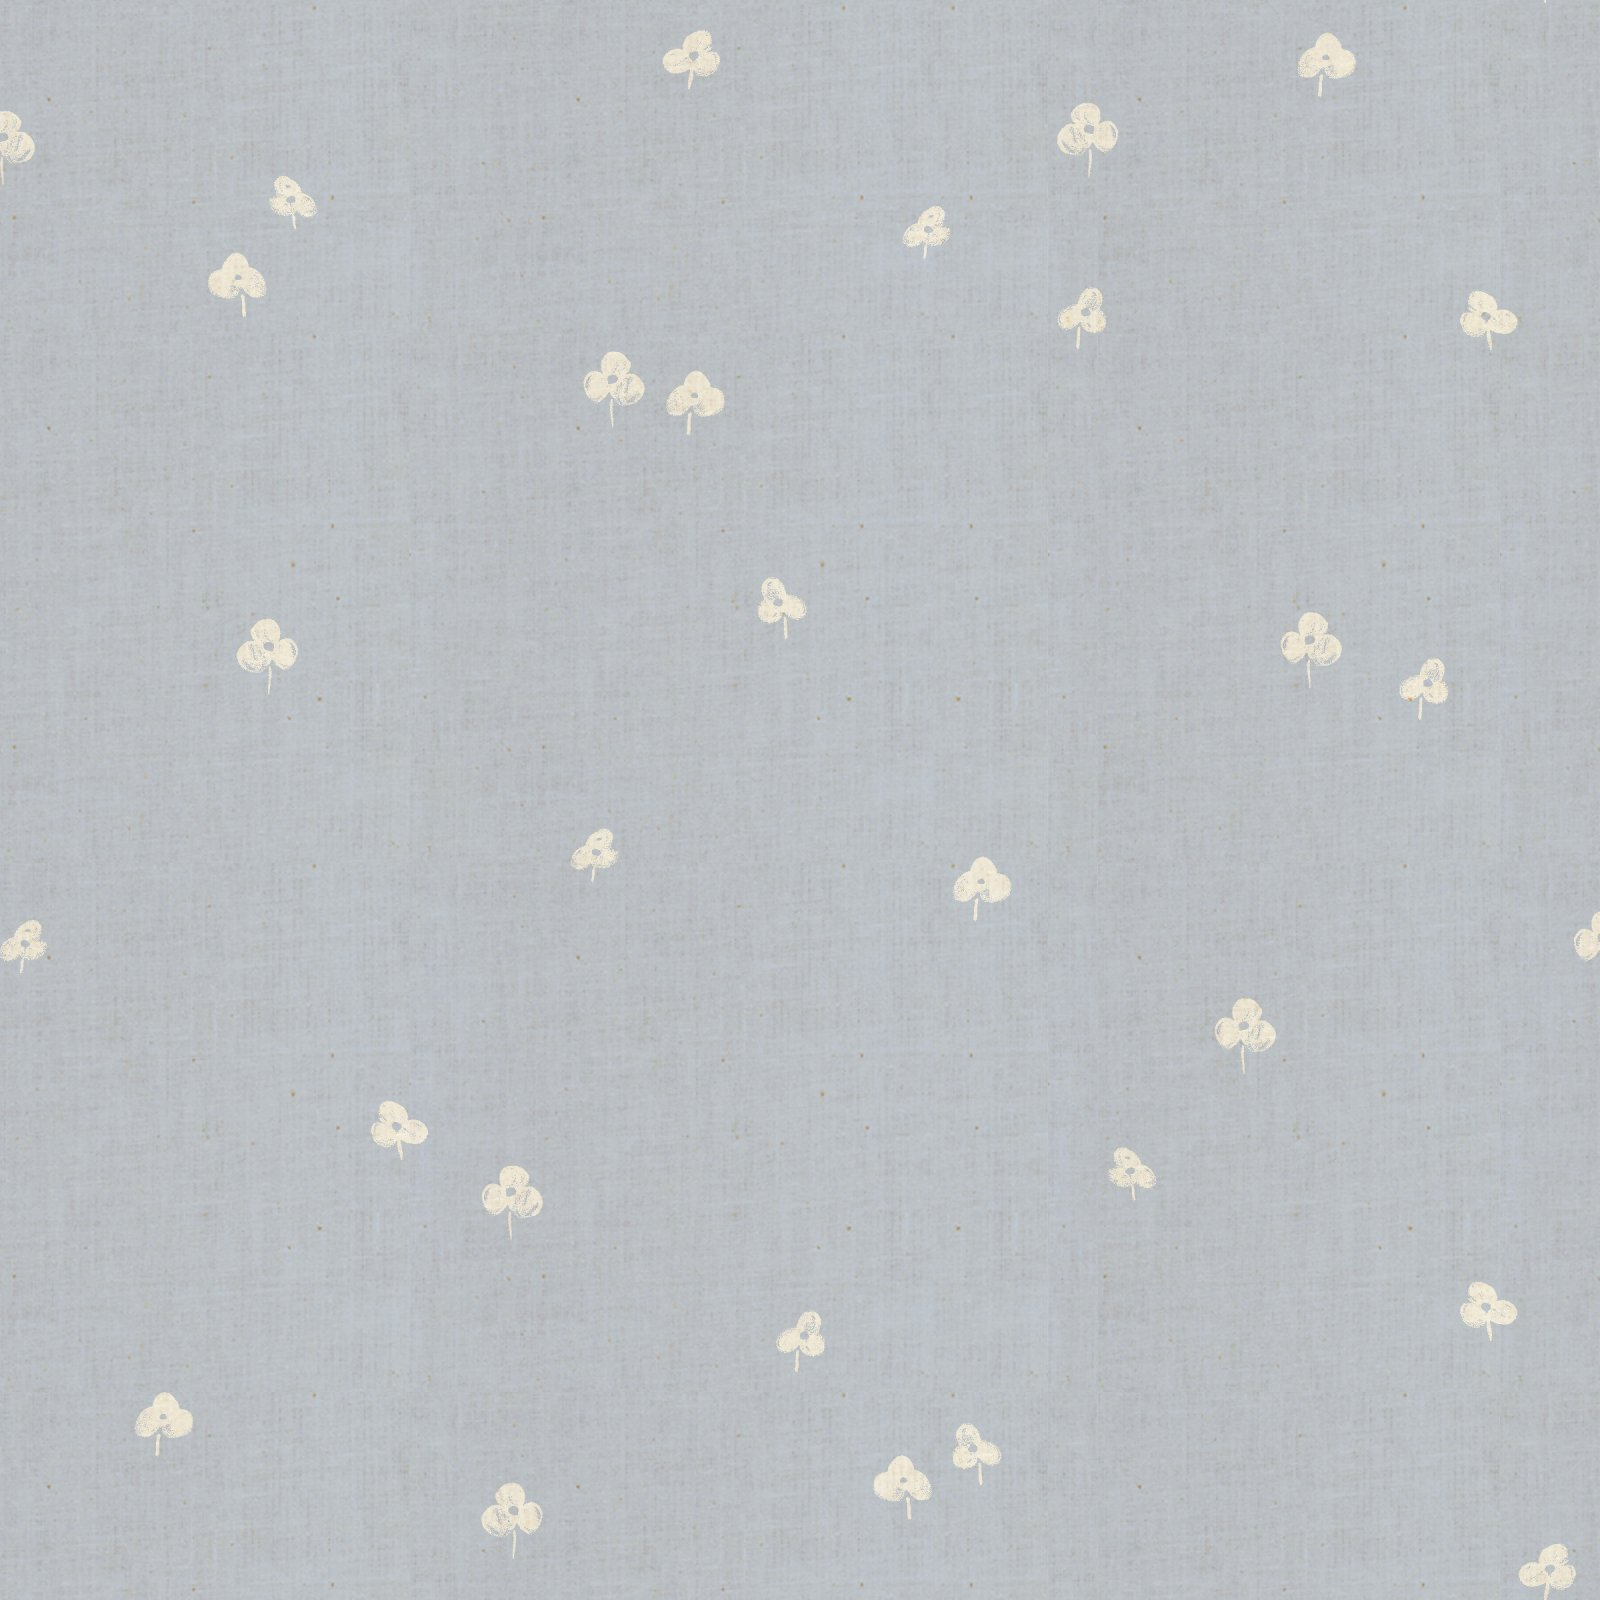 Cotton + Steel Basics Unbleached Cotton - Clover and Over - Narwhal